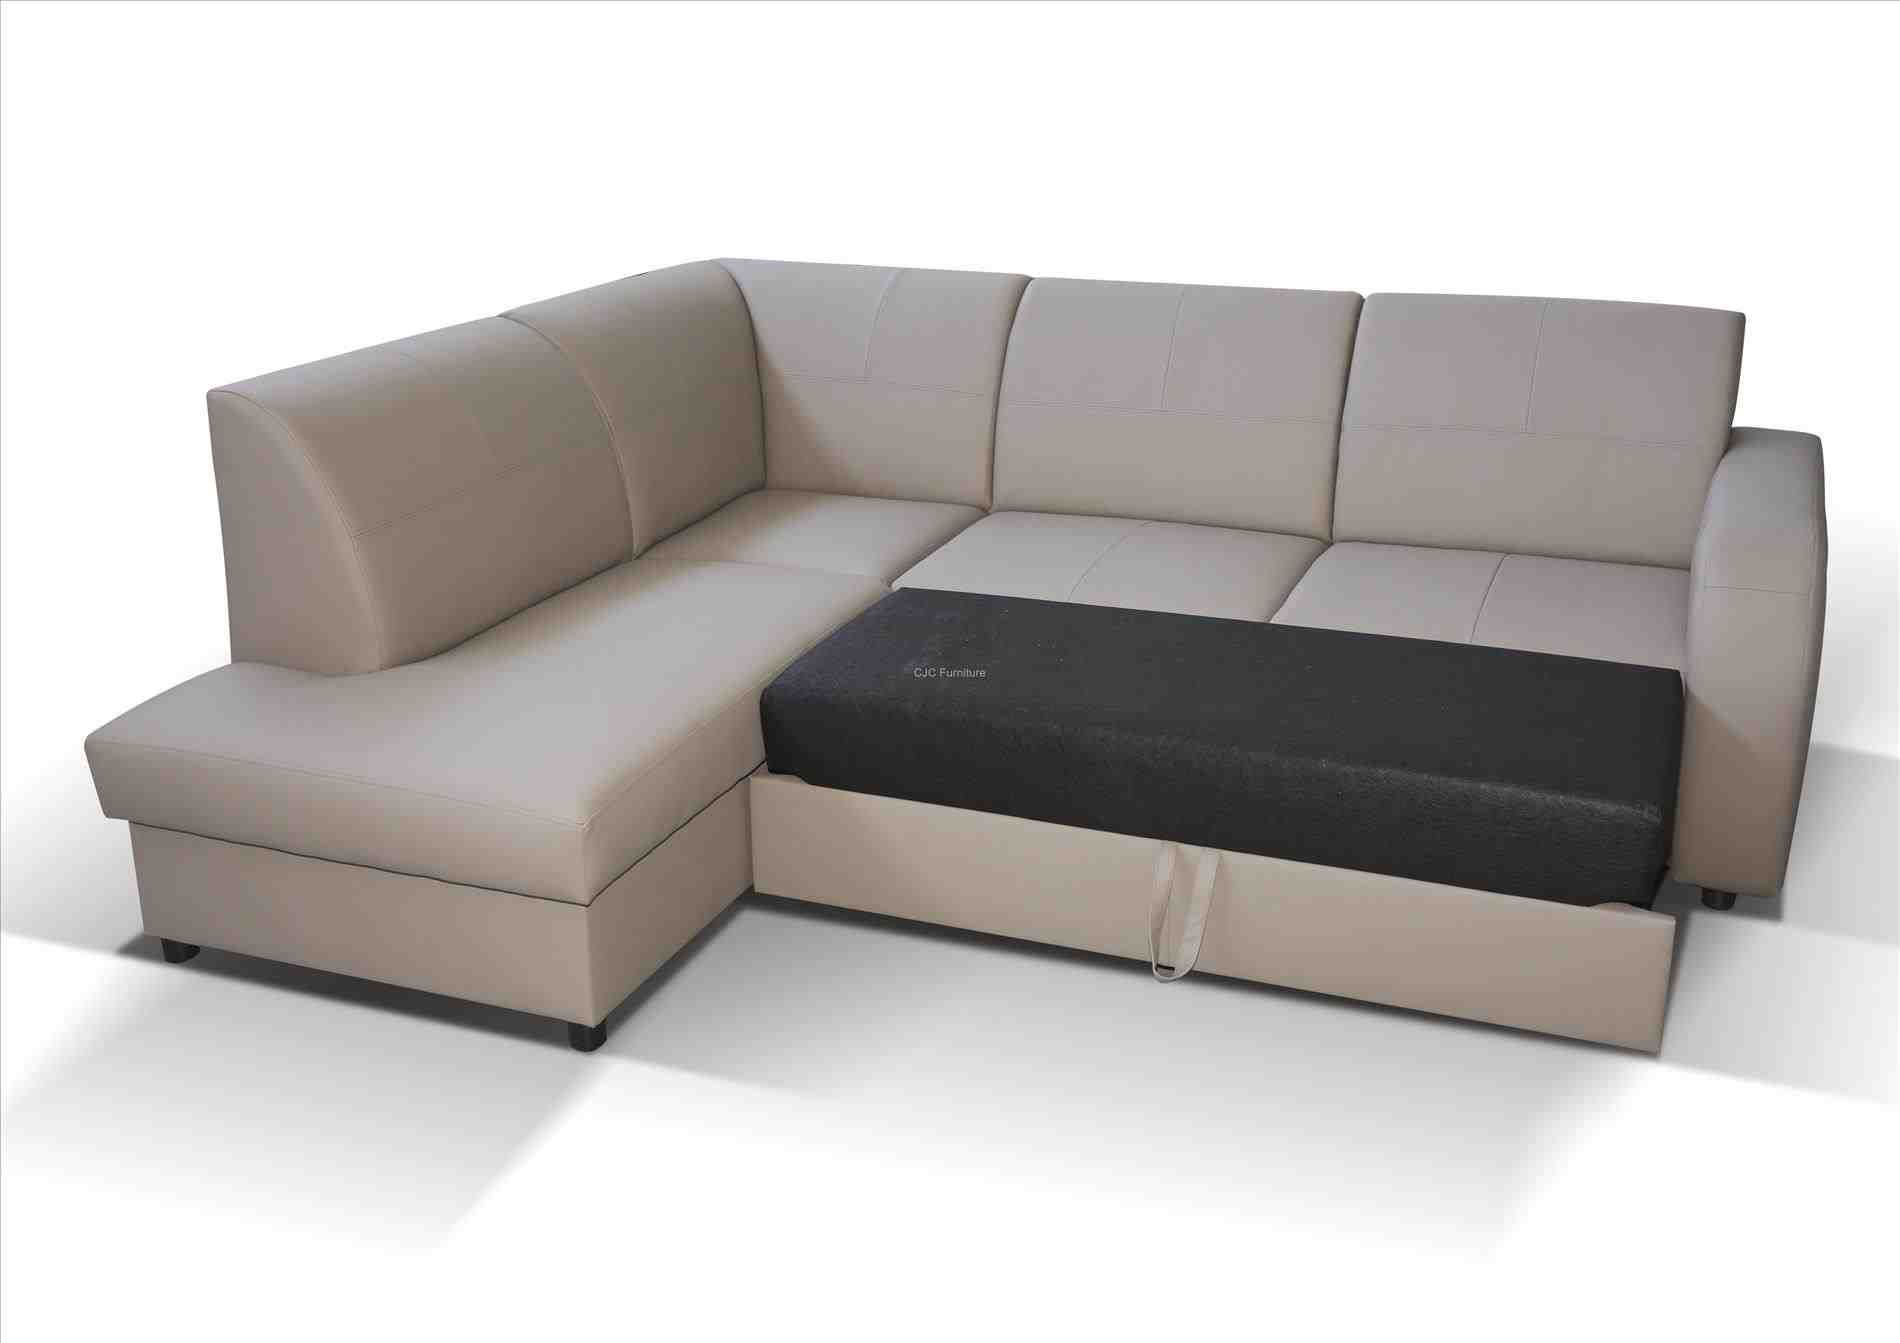 Sofa Uk Finance Sofa Finance Home And Textiles